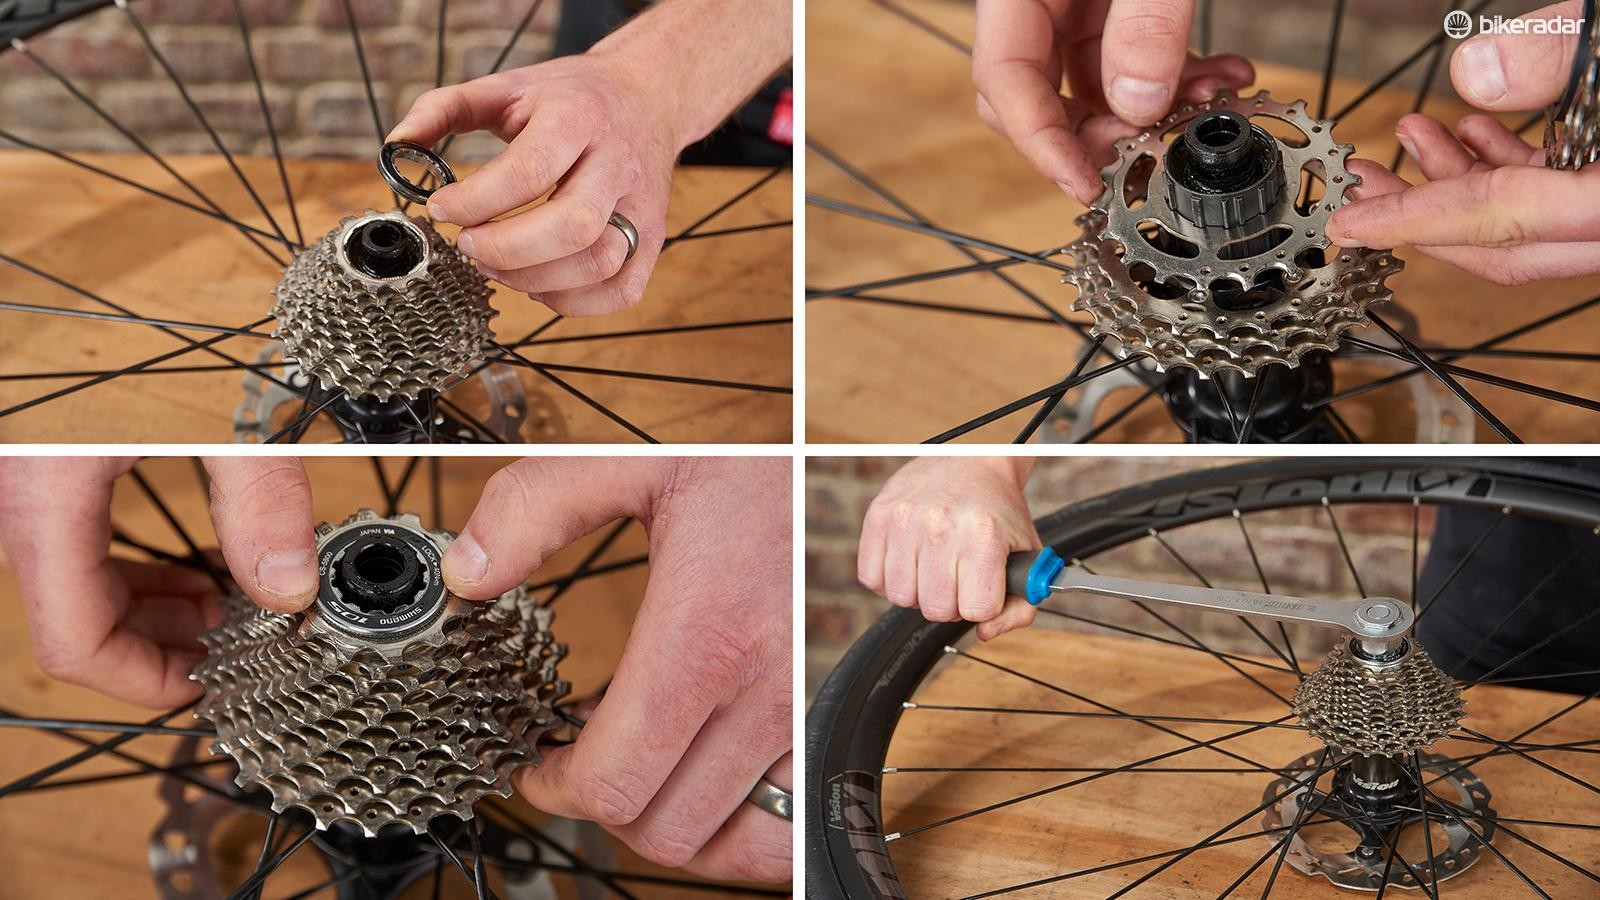 Tips for replacing a worn cassette